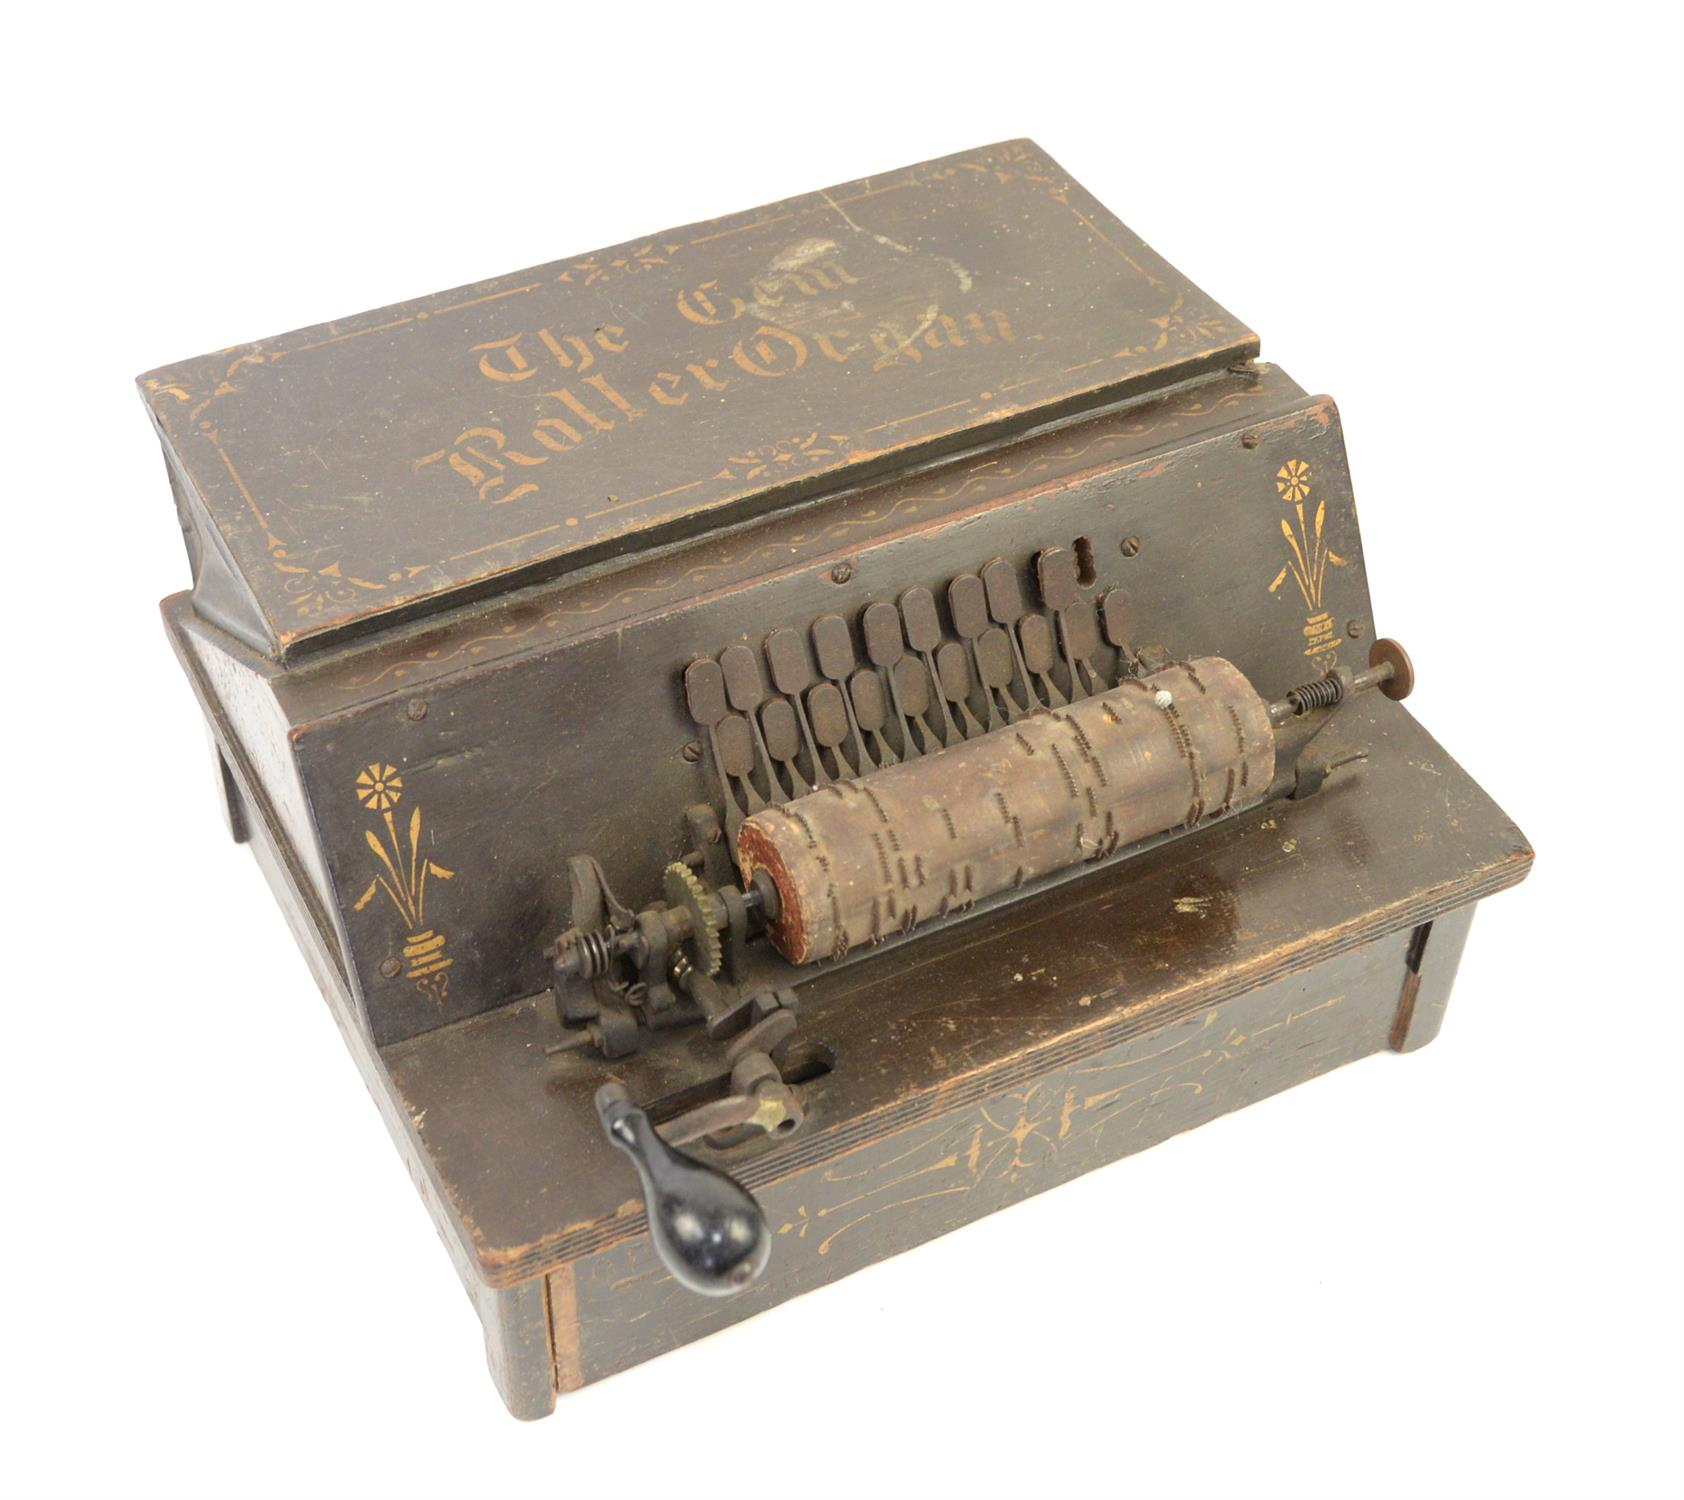 """Late 19th century twenty-key """"Gem Roller Organ"""", in painted wooden case, with one music cylinders,"""